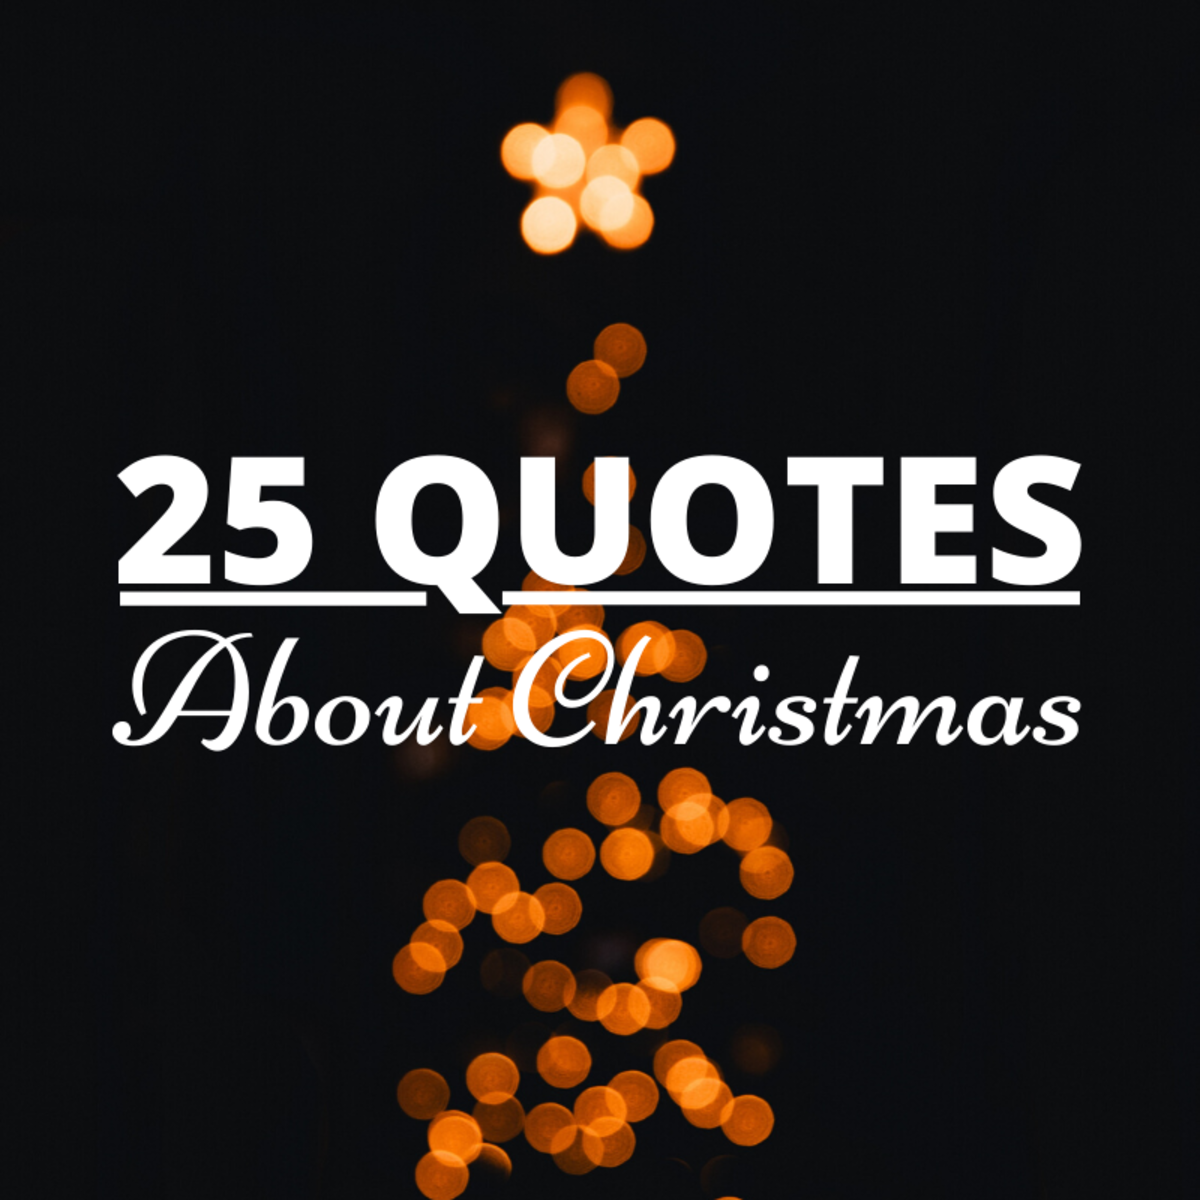 These quotes about Christmas perfectly encapsulate the spirit of the season. I hope you enjoy them as much as I do.